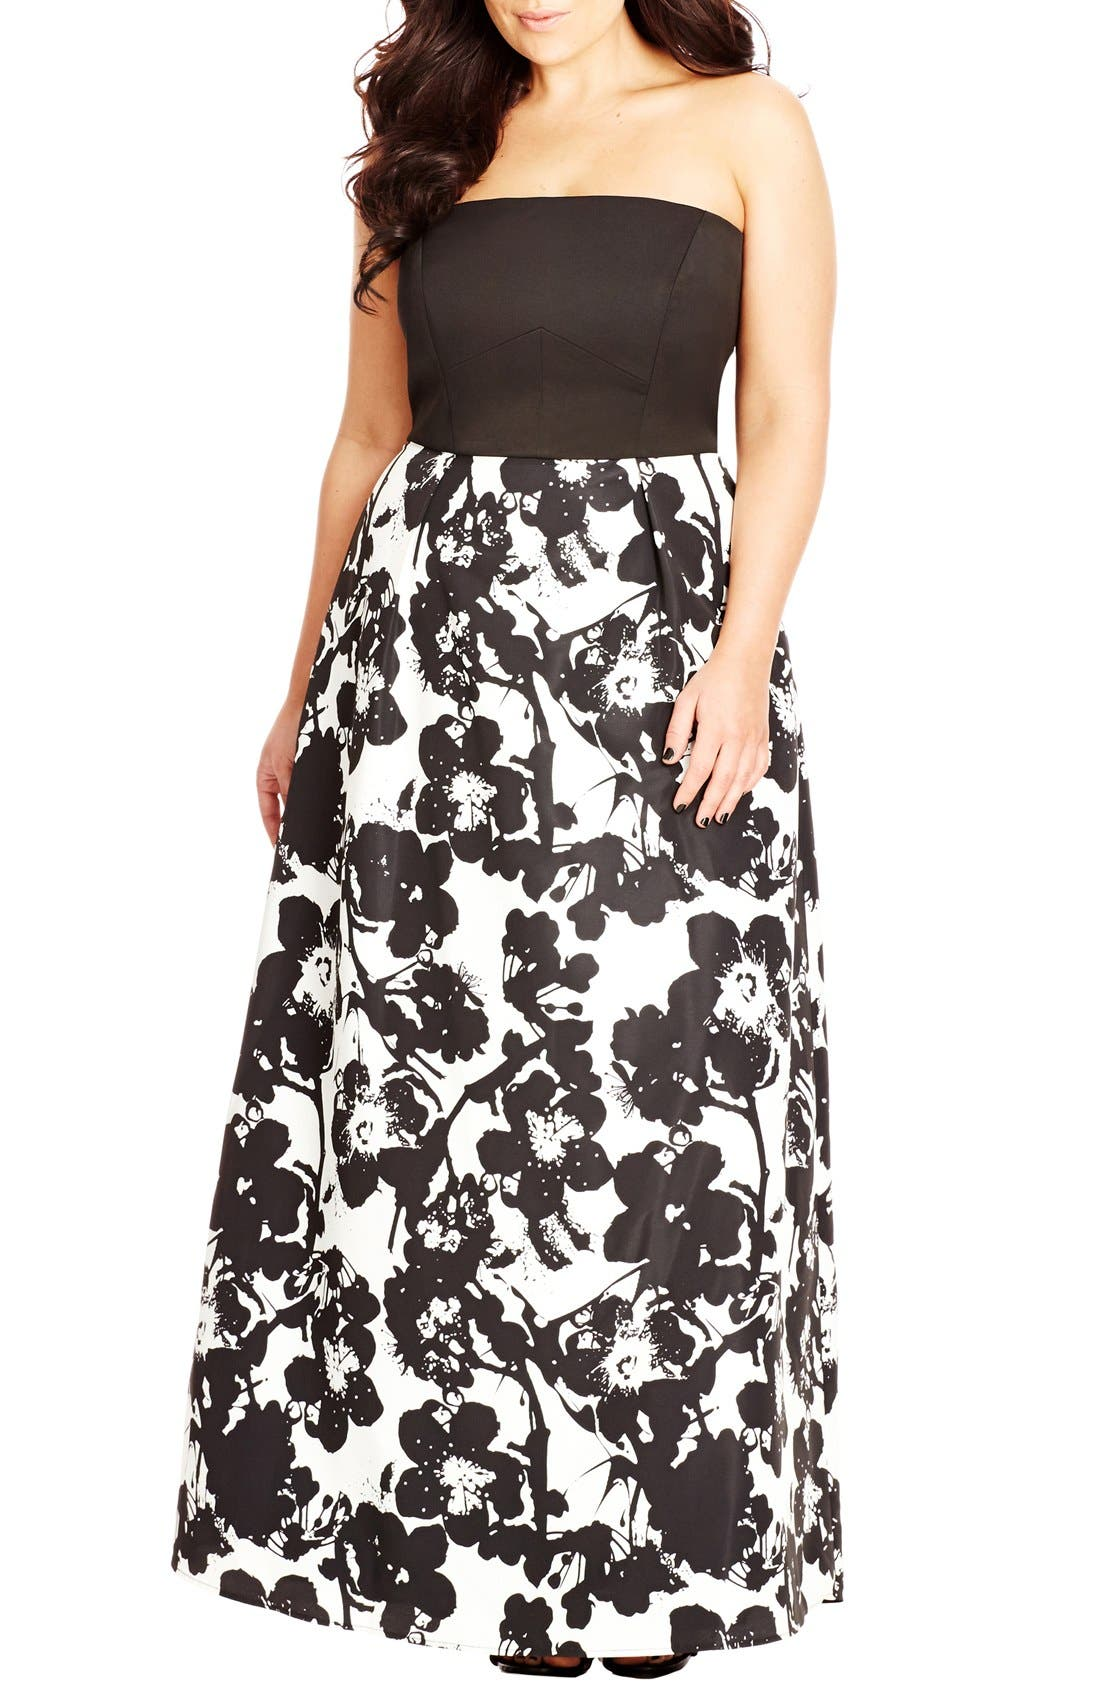 Alternate Image 1 Selected - City Chic 'Painted Poppy' Strapless Maxi Dress (Plus Size)